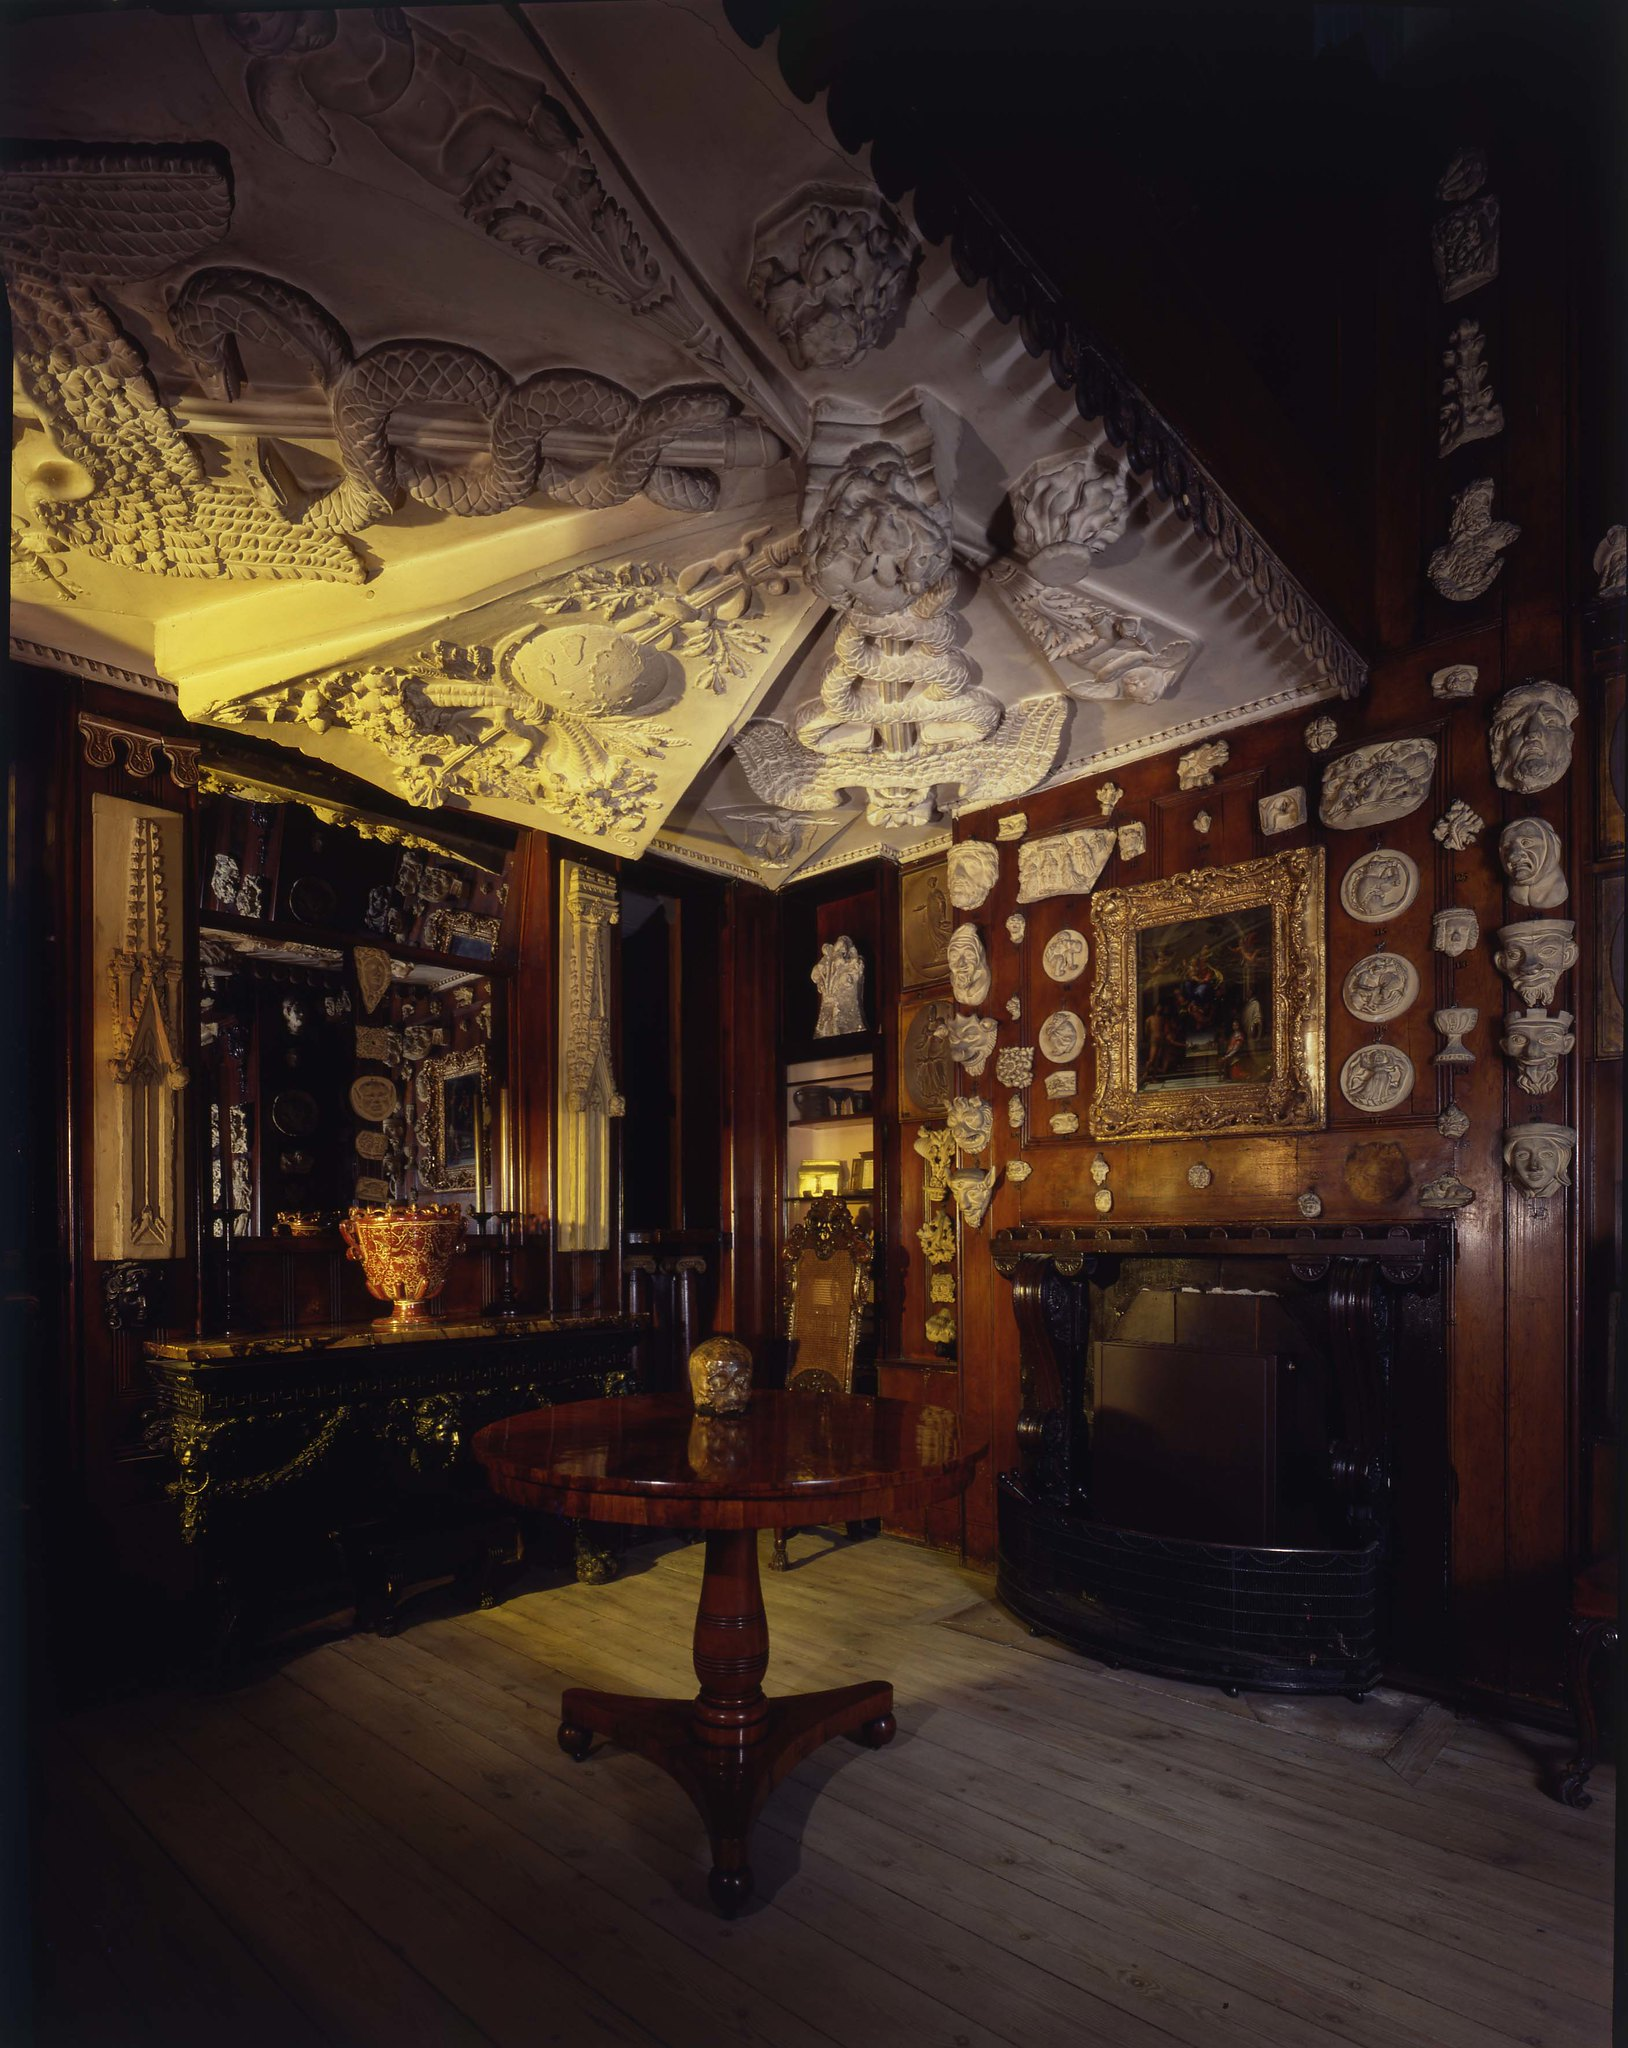 sir john soane 39 s museum flickr. Black Bedroom Furniture Sets. Home Design Ideas